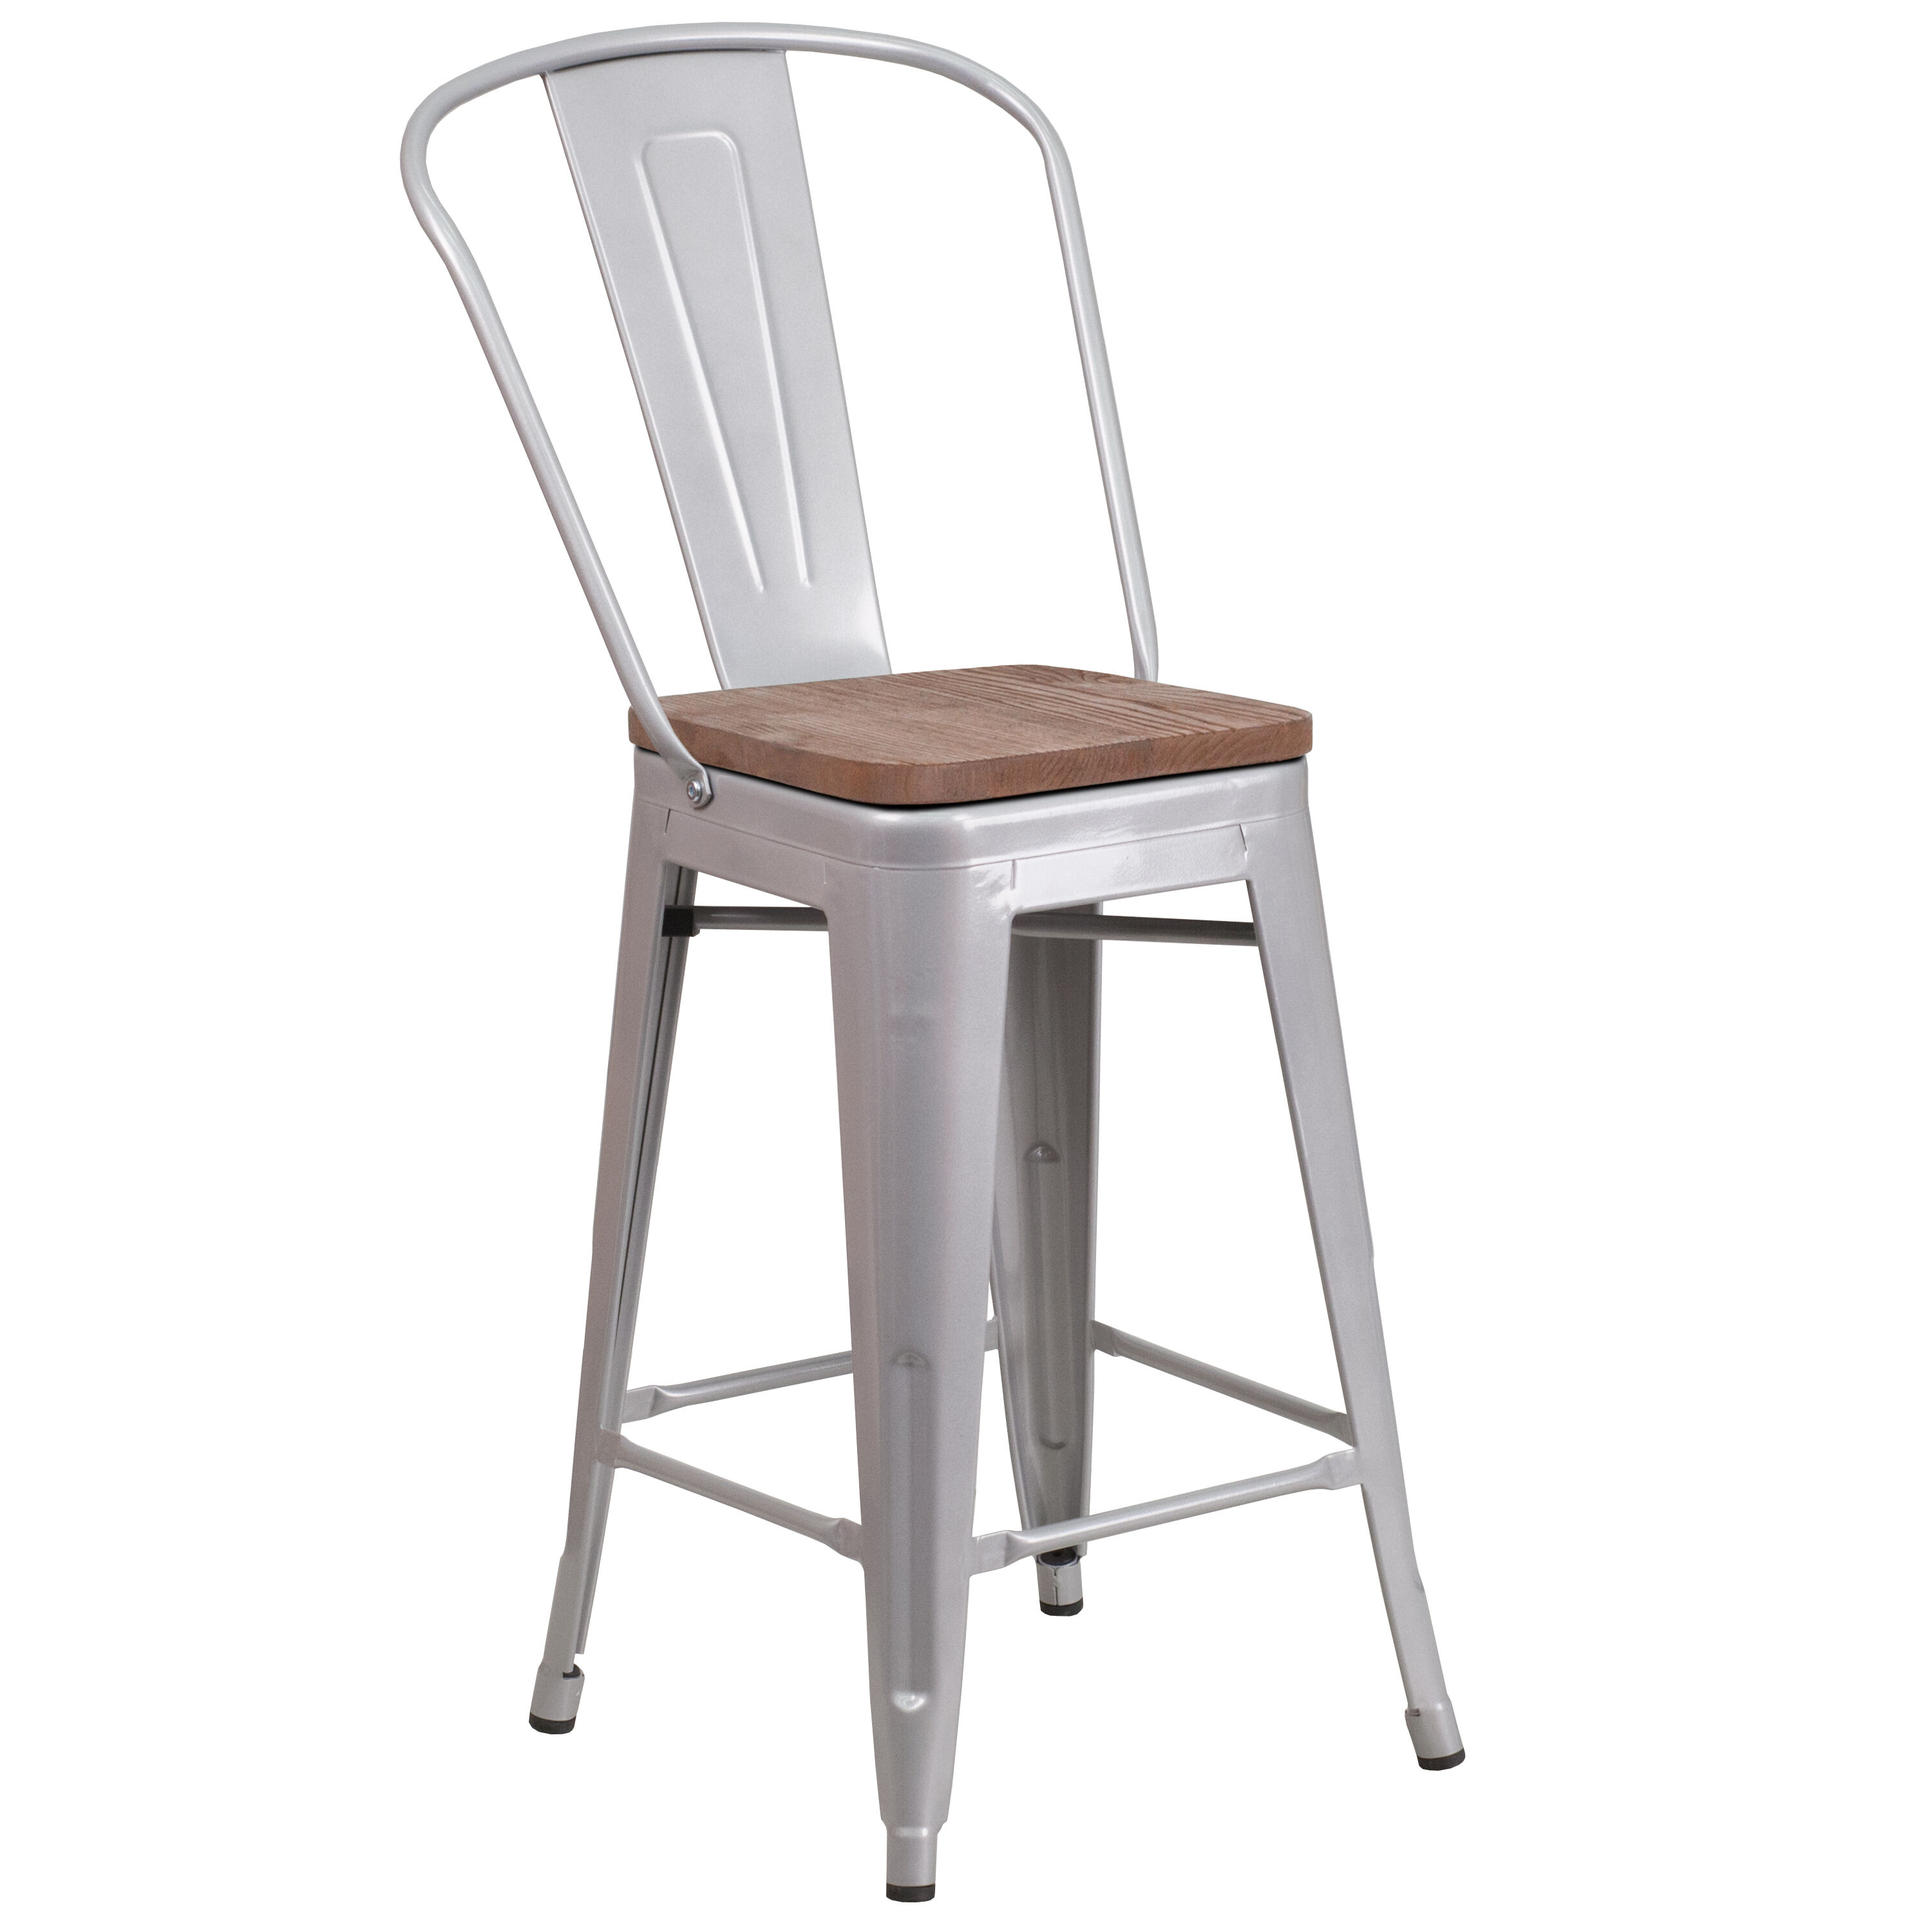 24 Silver Metal Counter Stool Ch 31320 24gb Sil Wd Gg